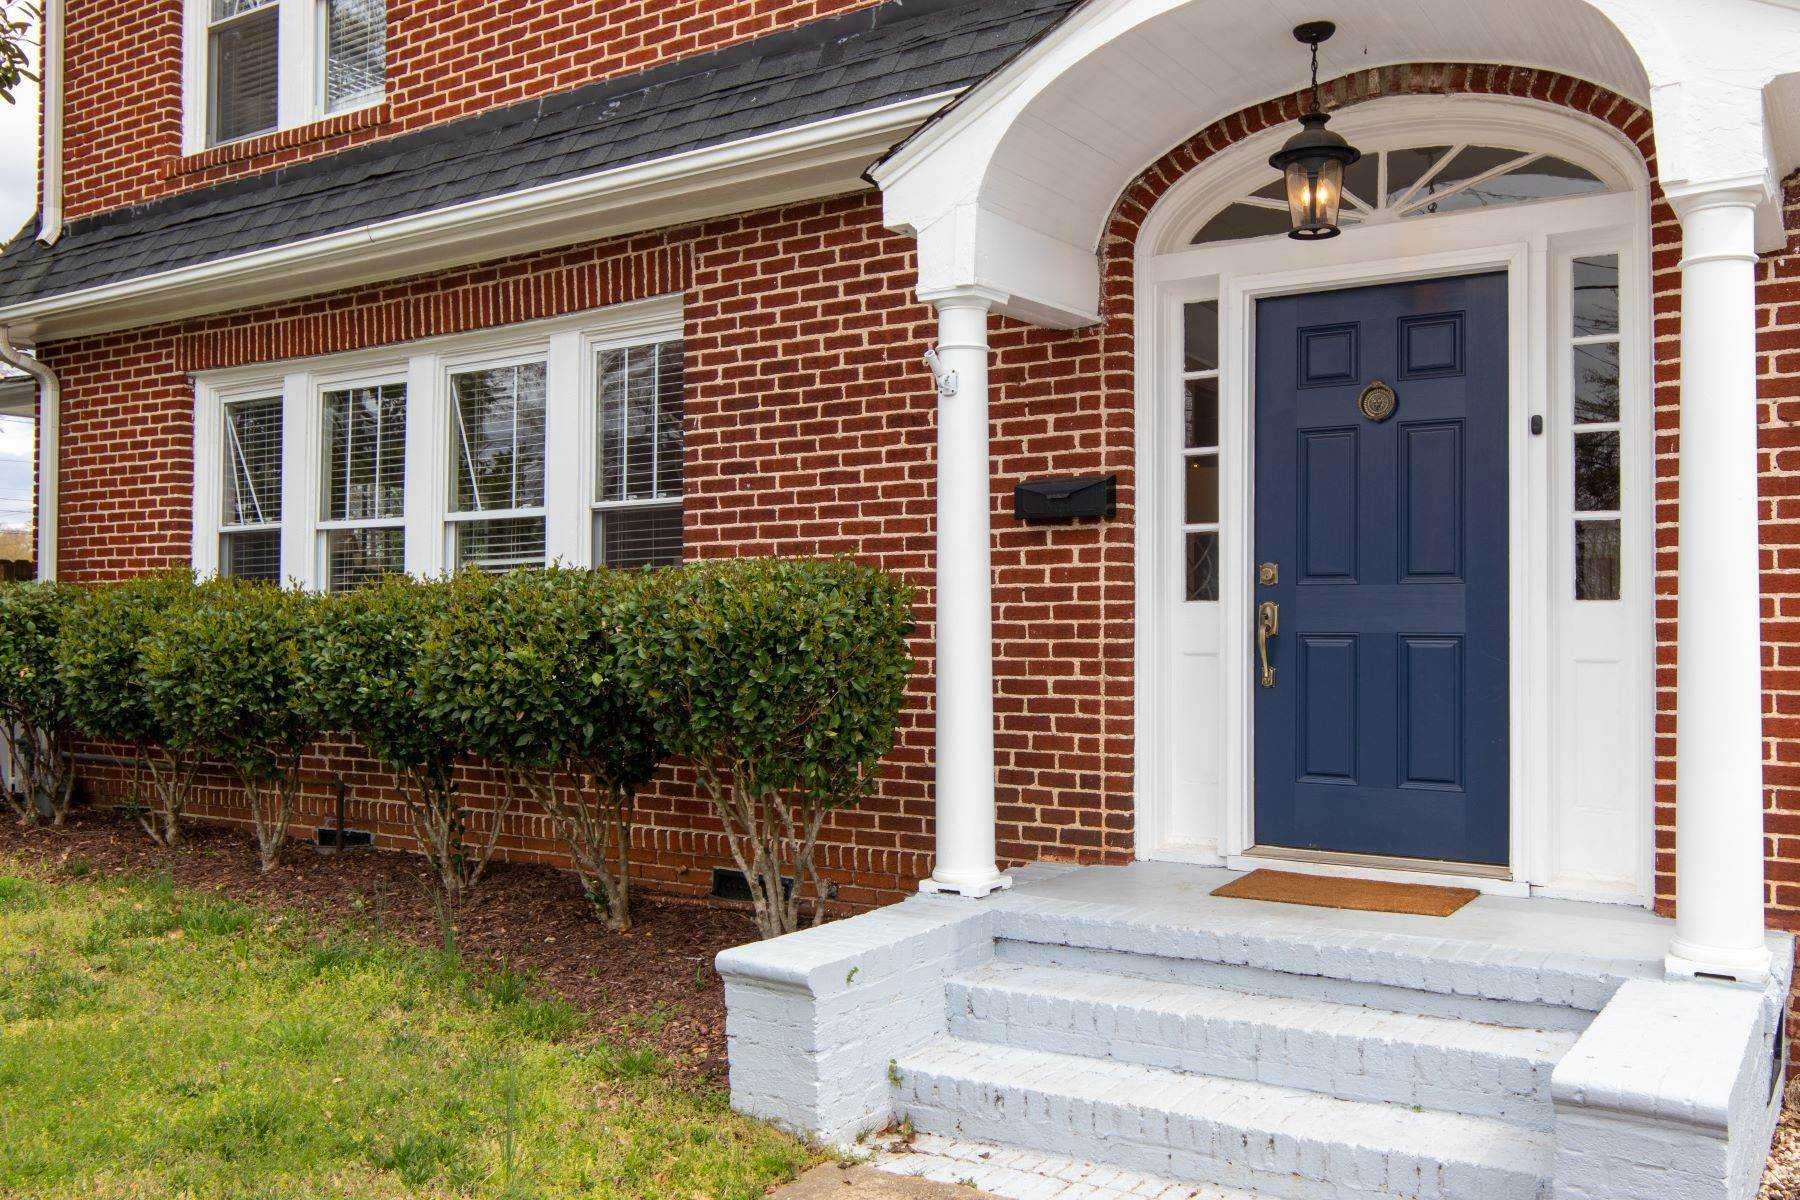 2. Single Family Homes for Sale at UNDER CONTRACT! 7 South Memminger Street, Greenville, SC 29601 Greenville, SC 29601